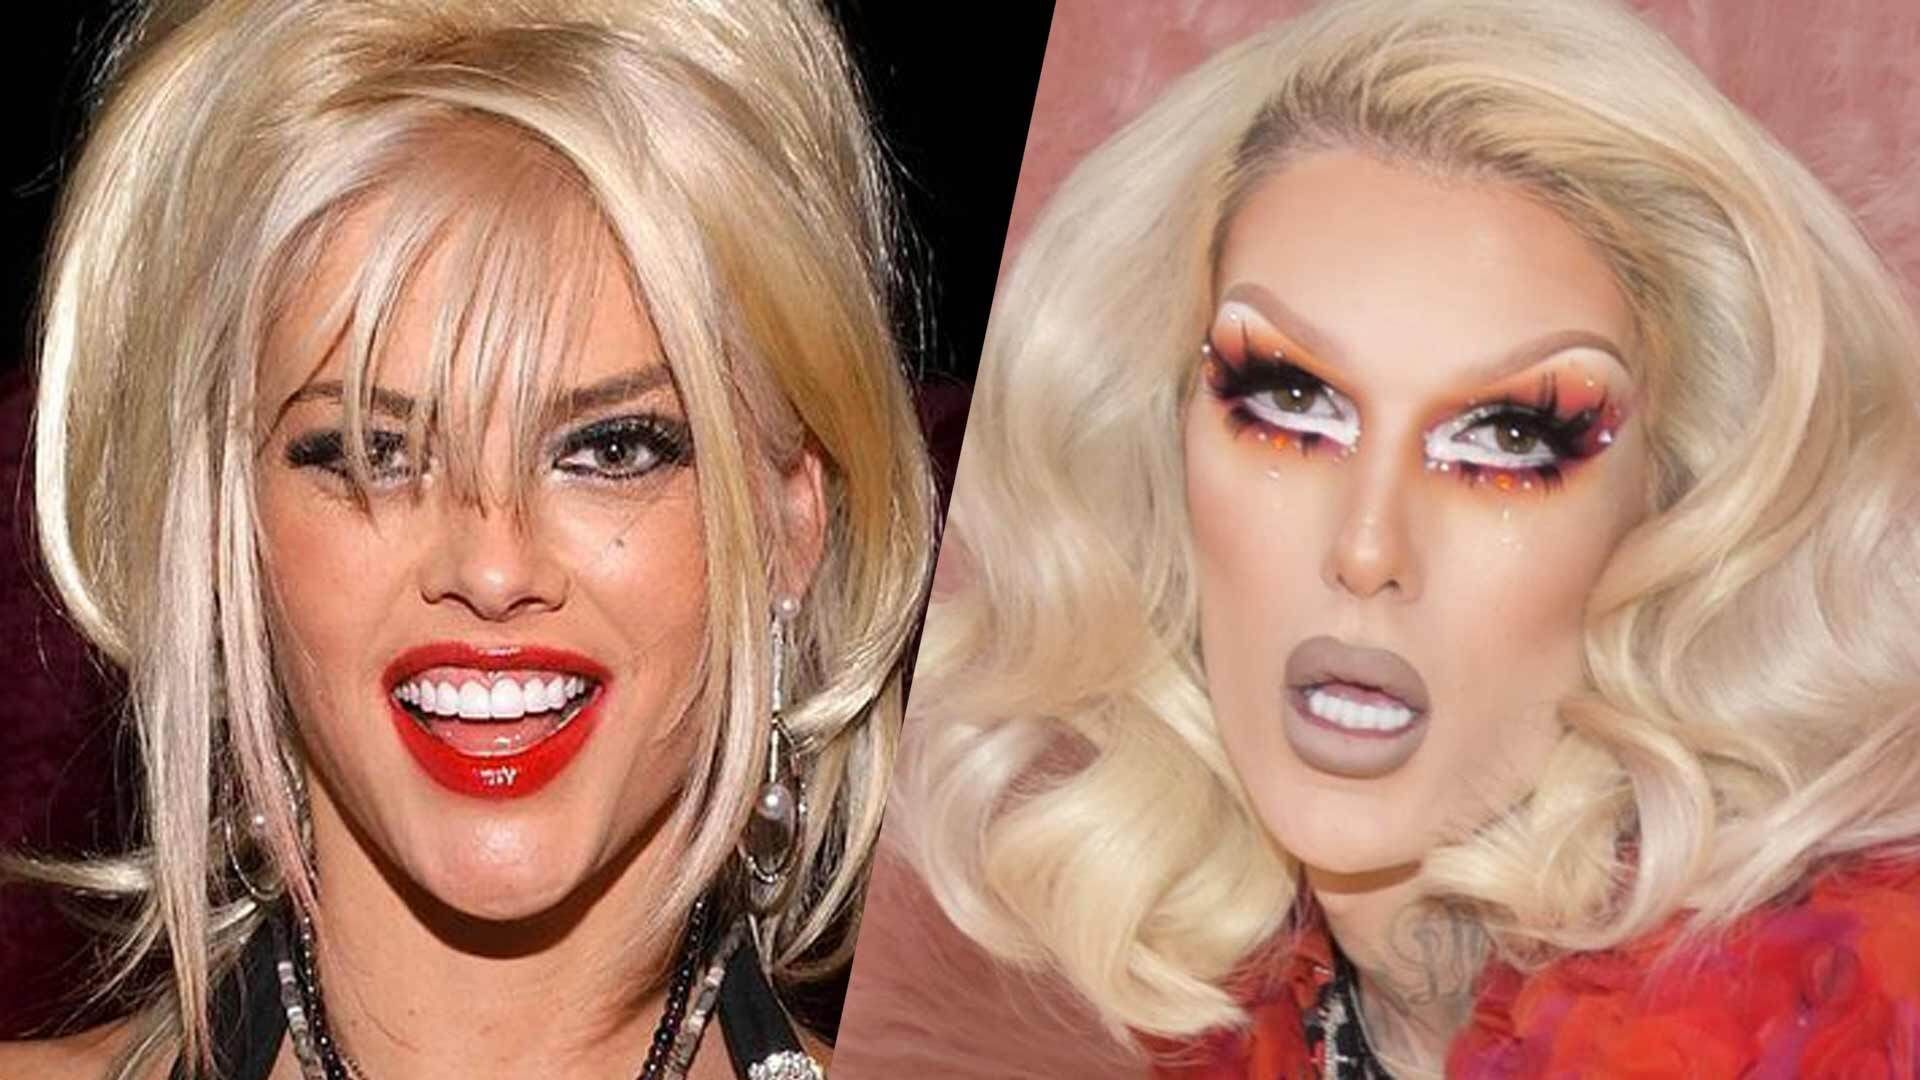 Jeffree Star Sued By Anna Nicole Smith's Estate Over Makeup Line